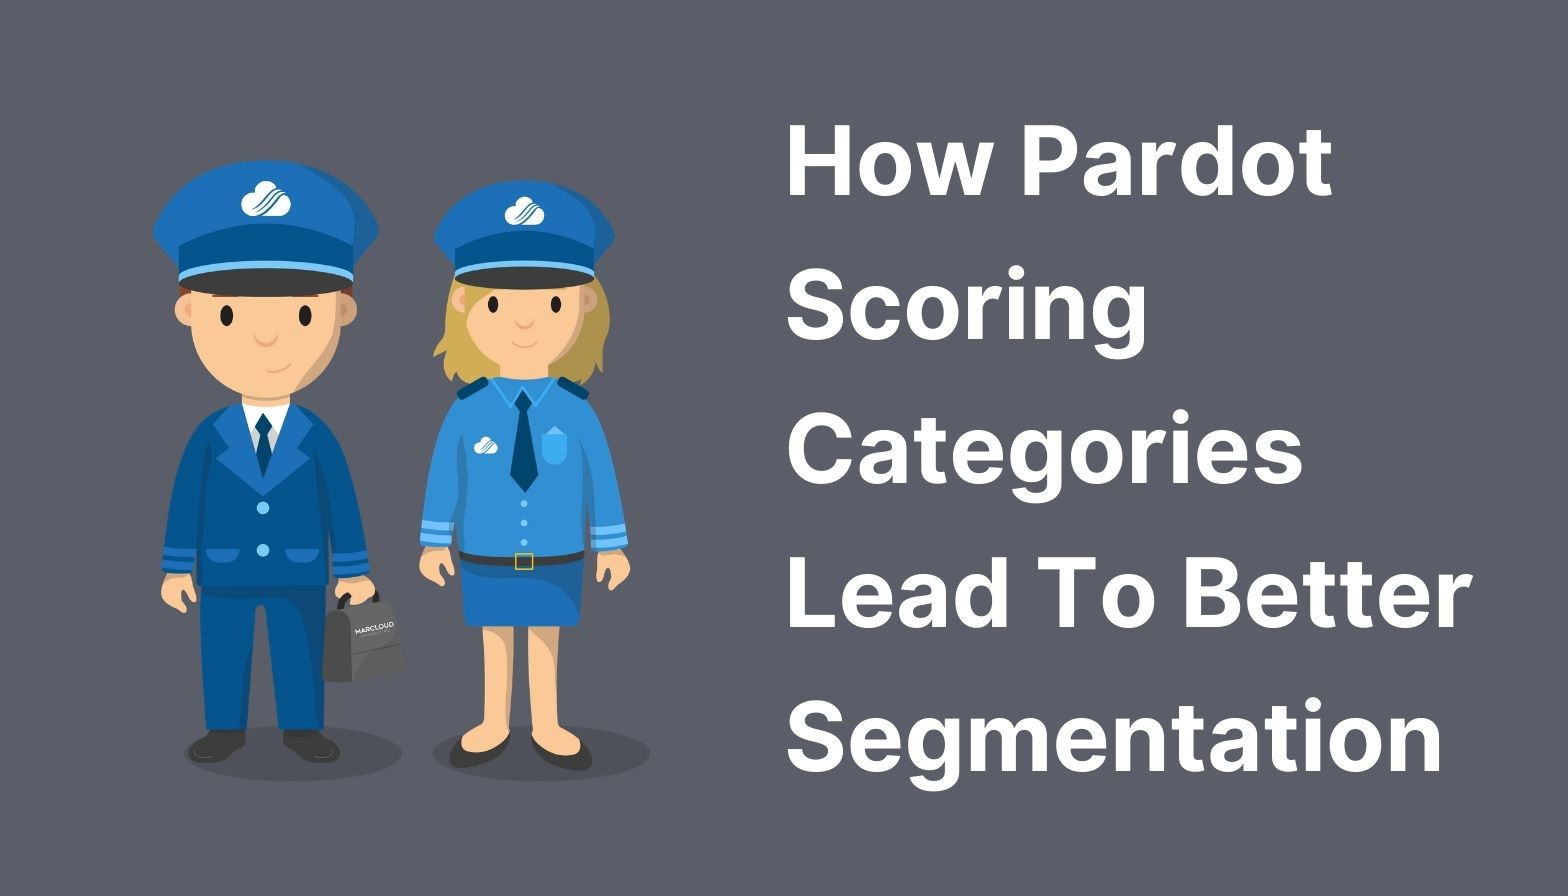 Pardot Scoring Categories for Segmentation